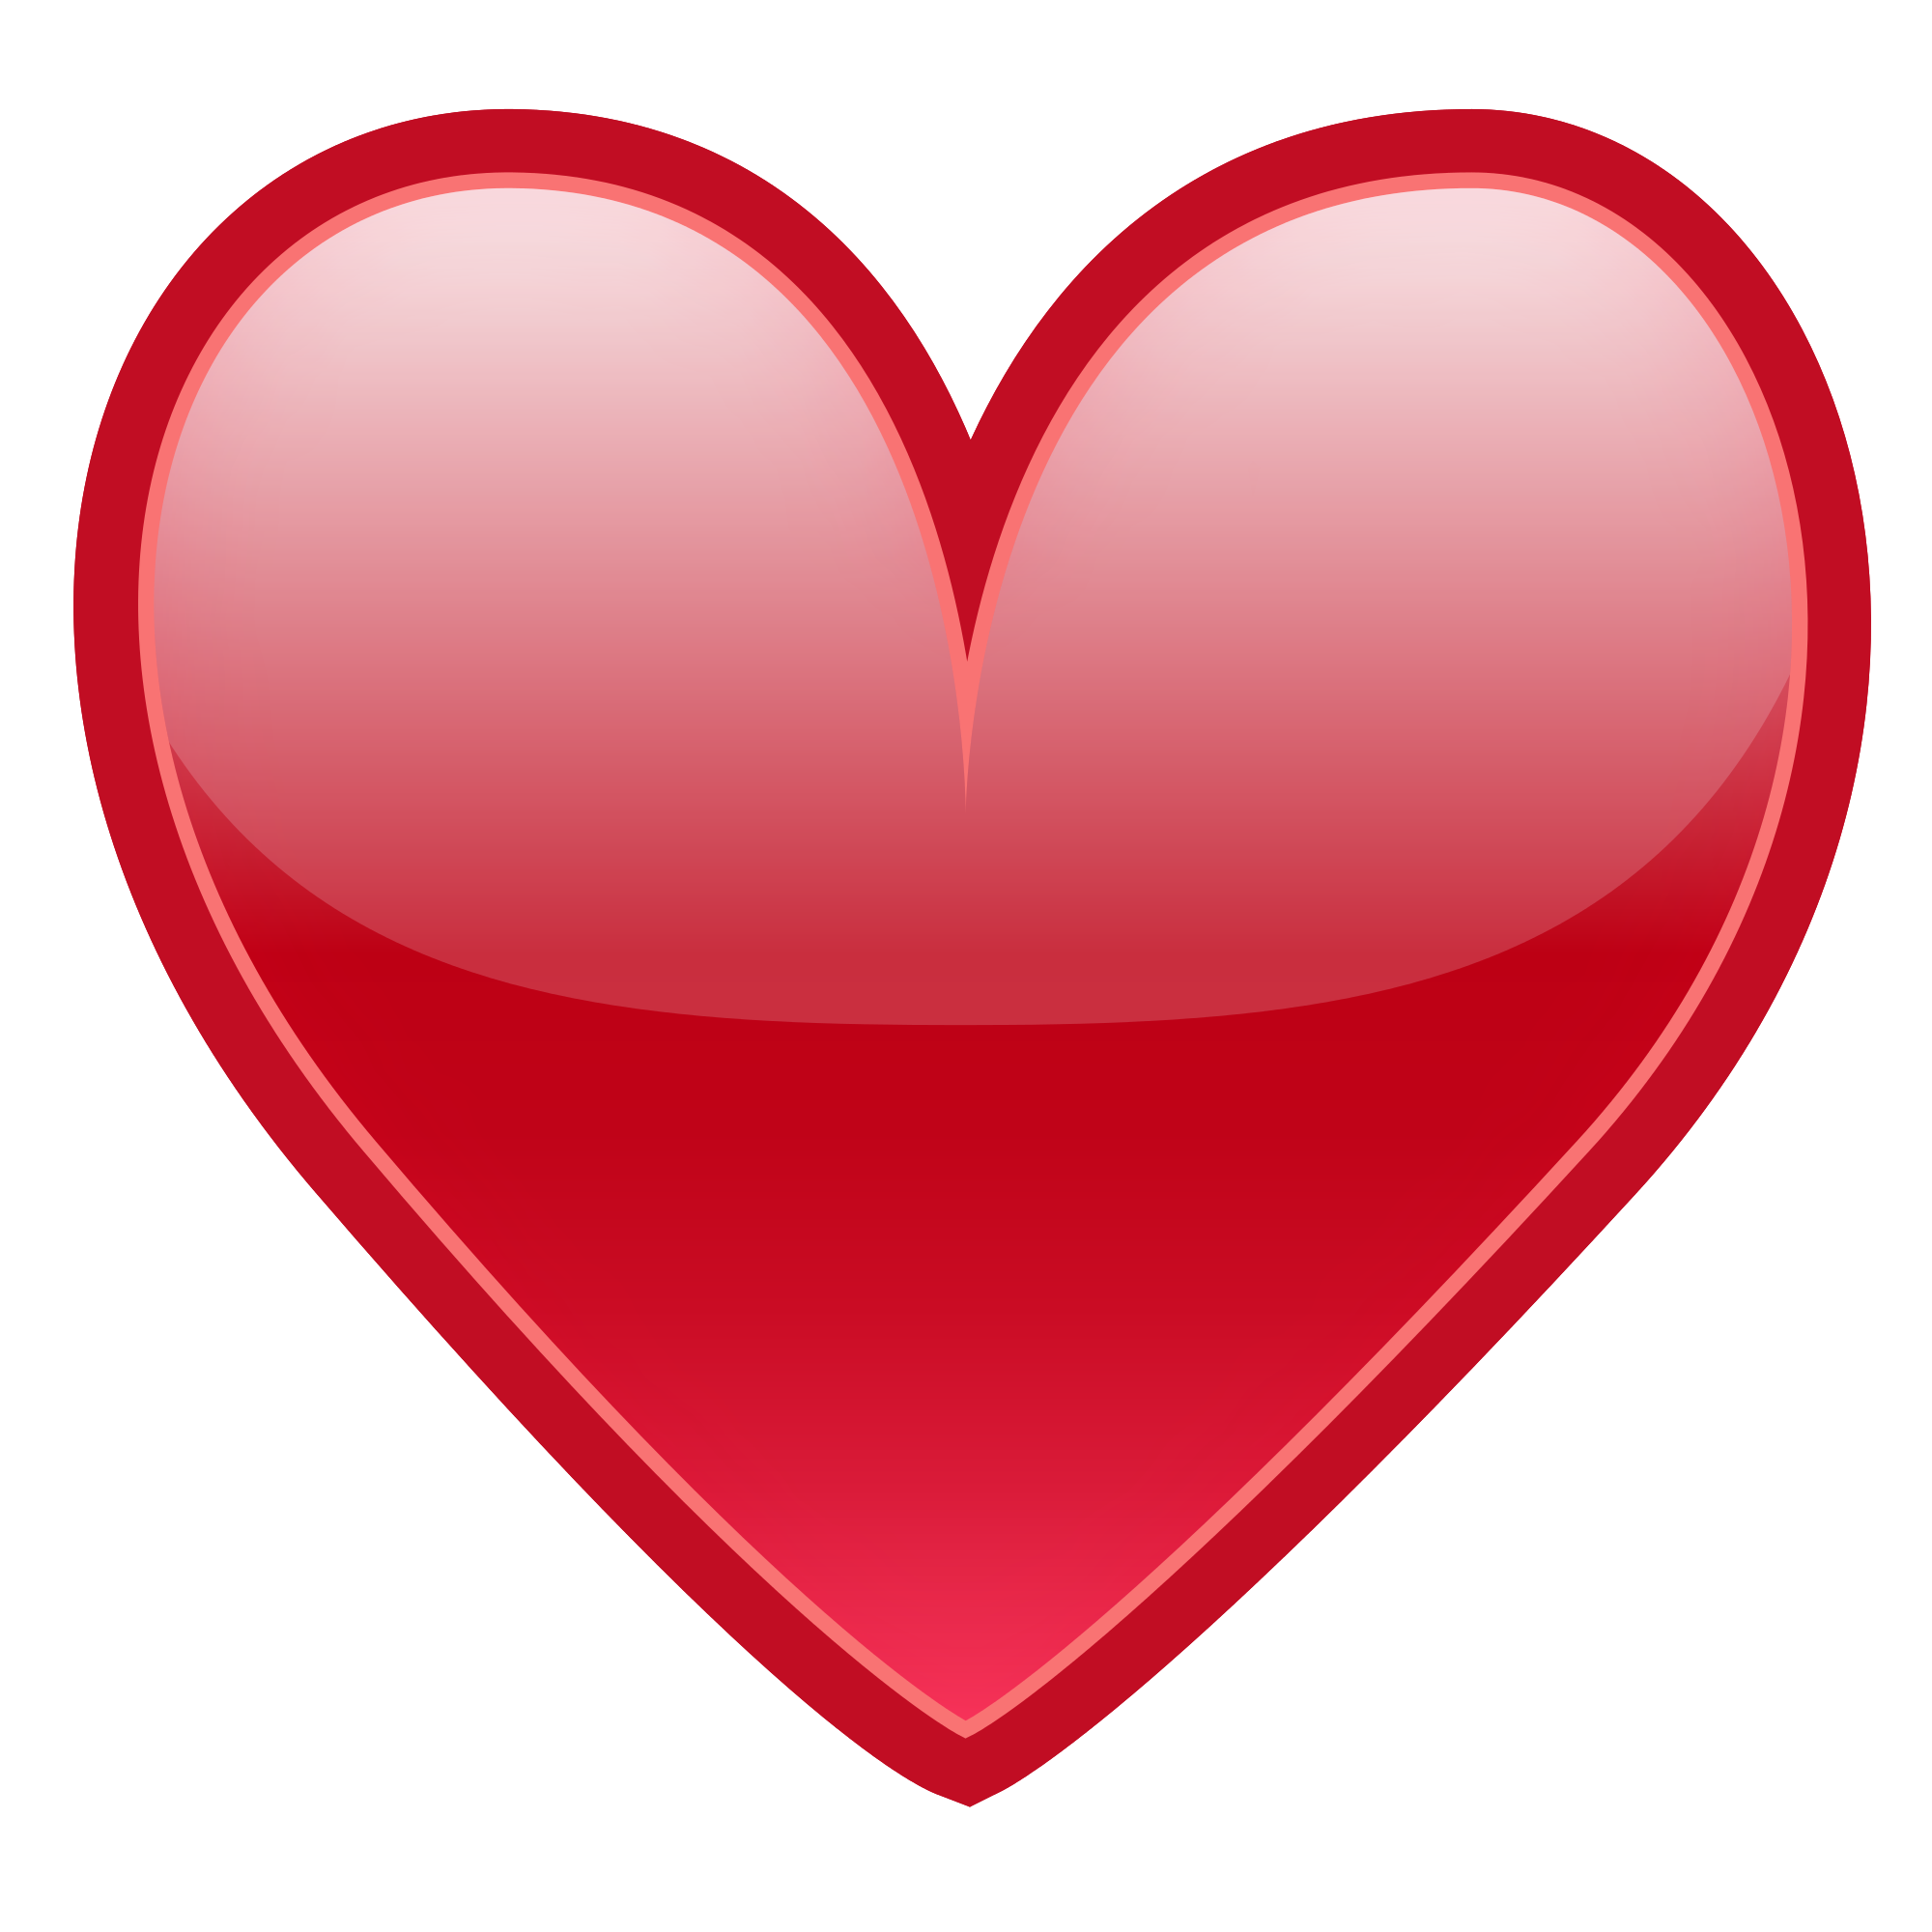 Heartbeat clipart svg. File peo wikimedia commons